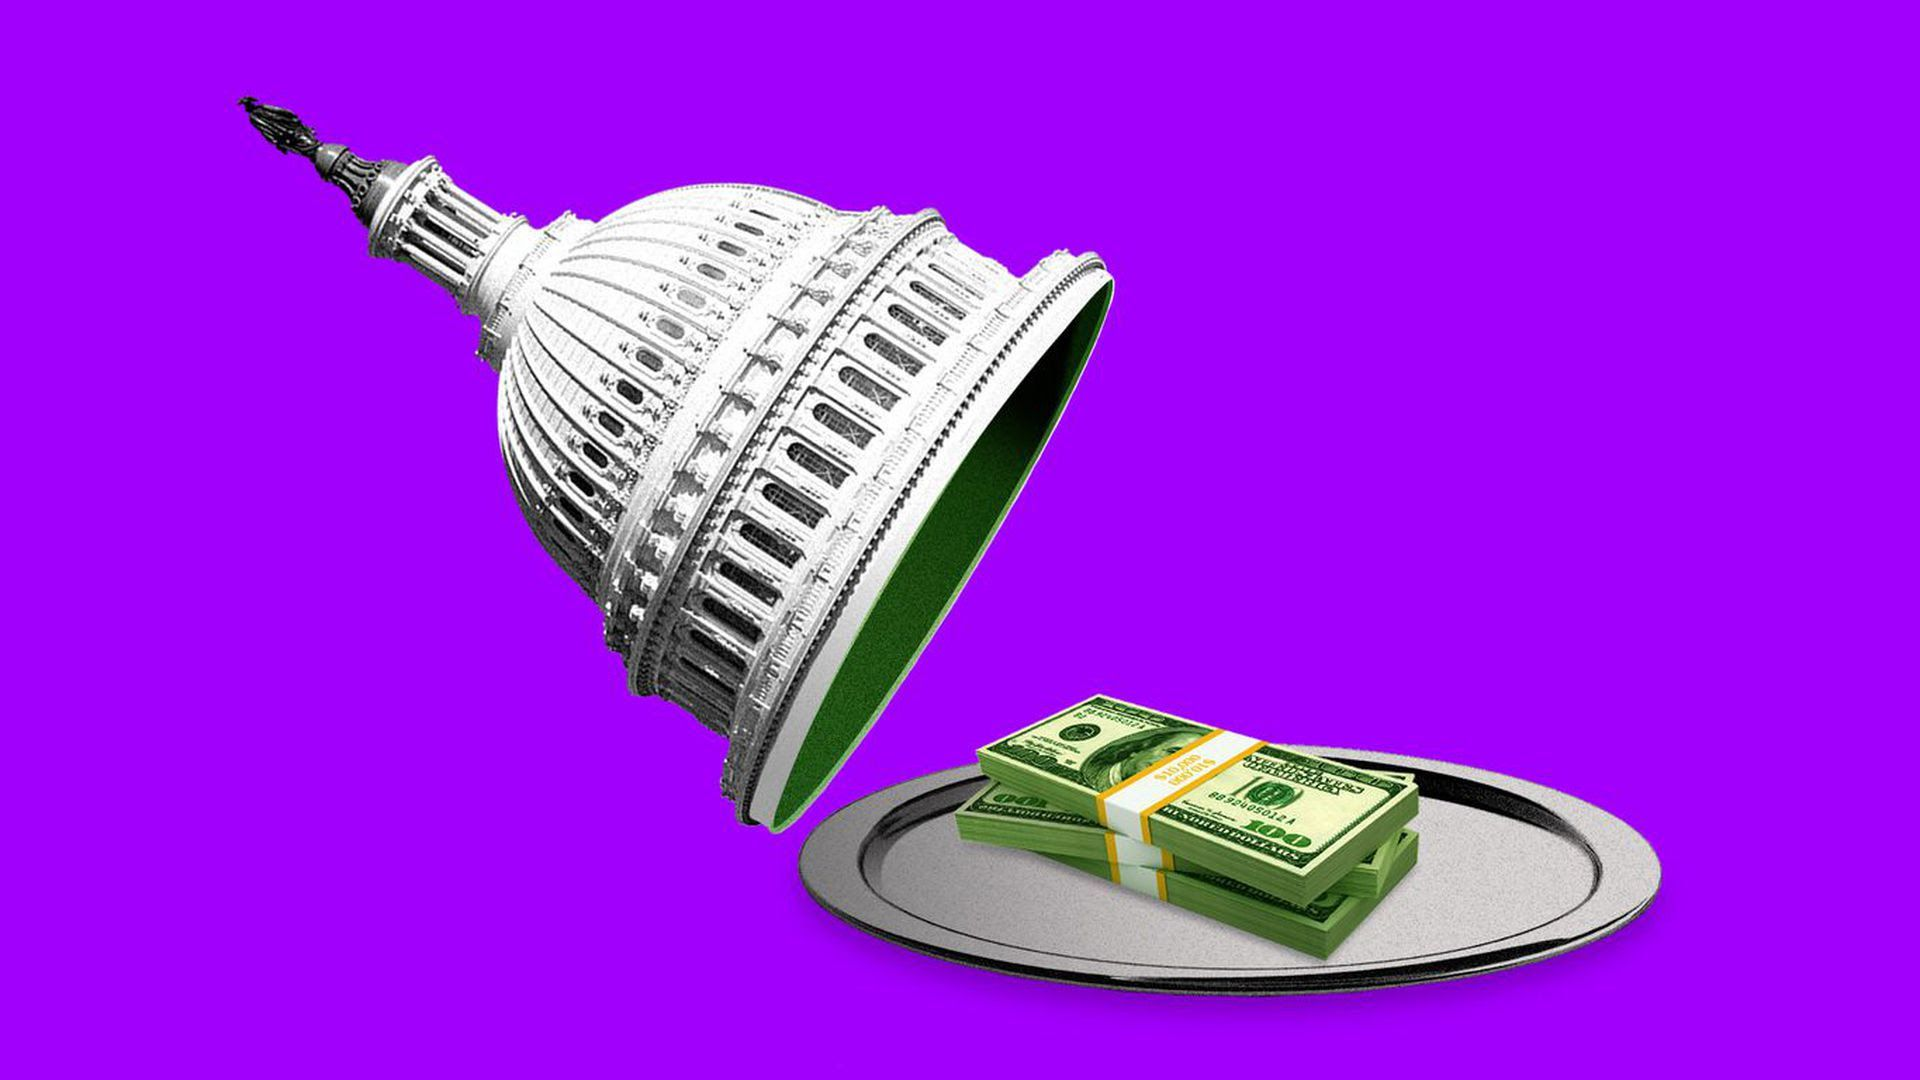 Illustration of Congressional dome lifting to show a platter of money